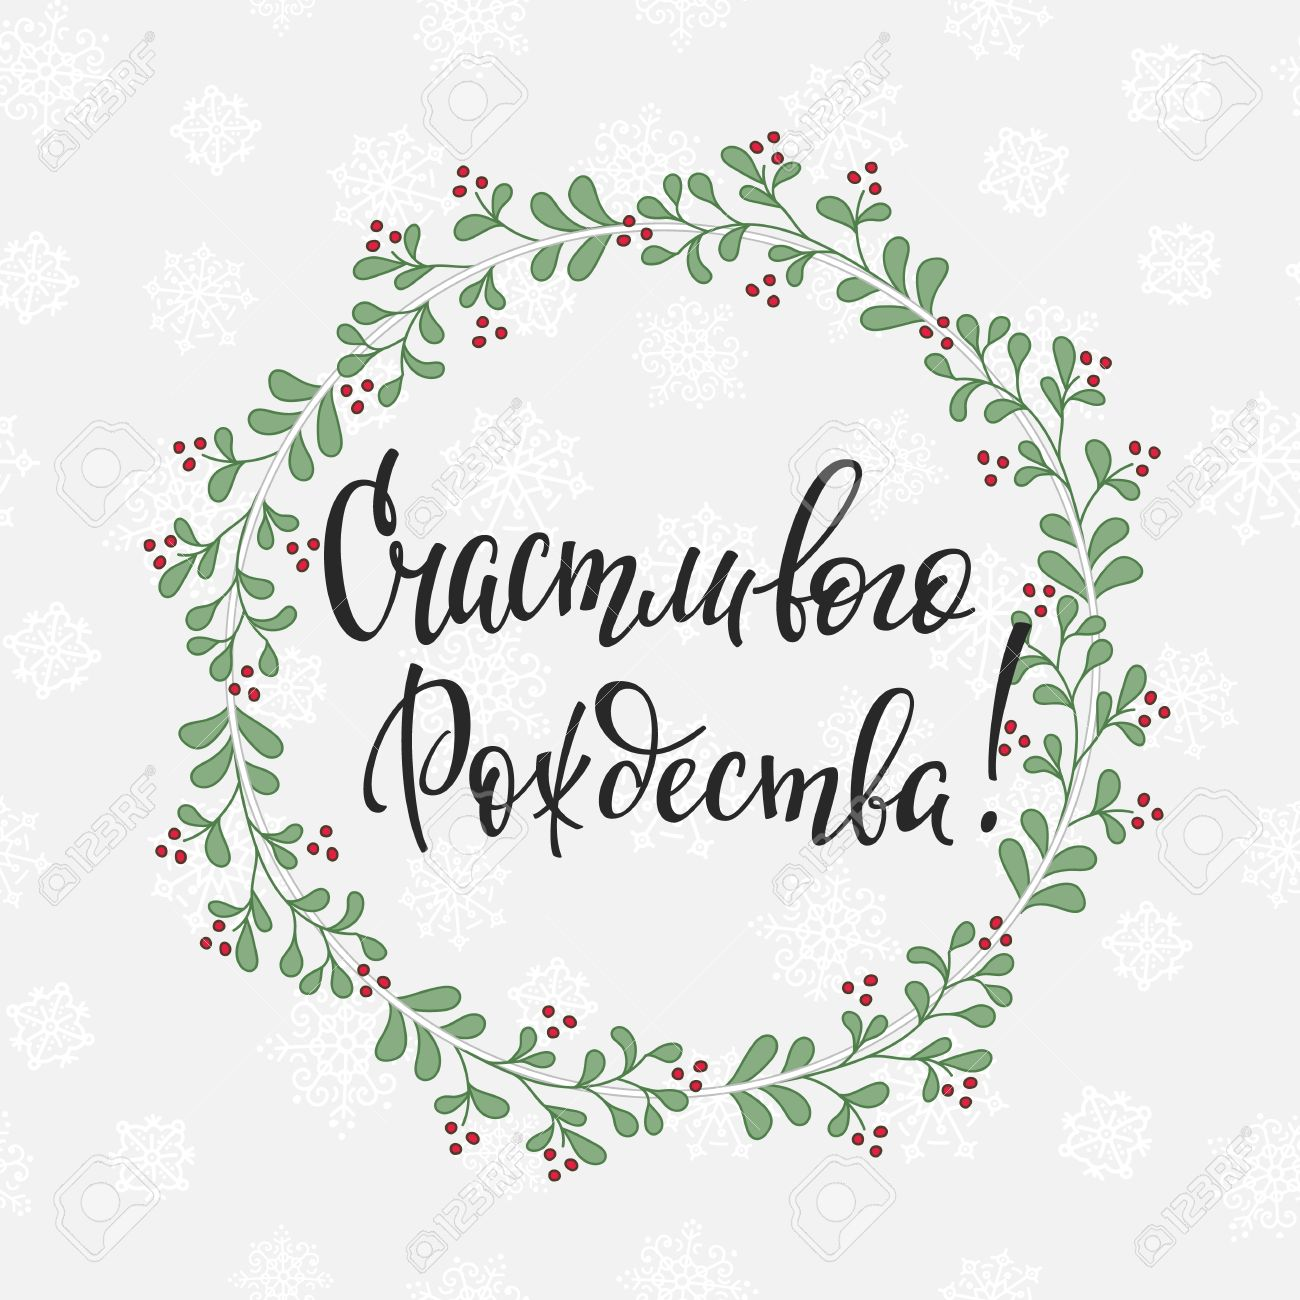 Lettering quotes calligraphy russian text merry happy christmas lettering quotes calligraphy russian text merry happy christmas winter holidays simple postcard or poster kristyandbryce Choice Image